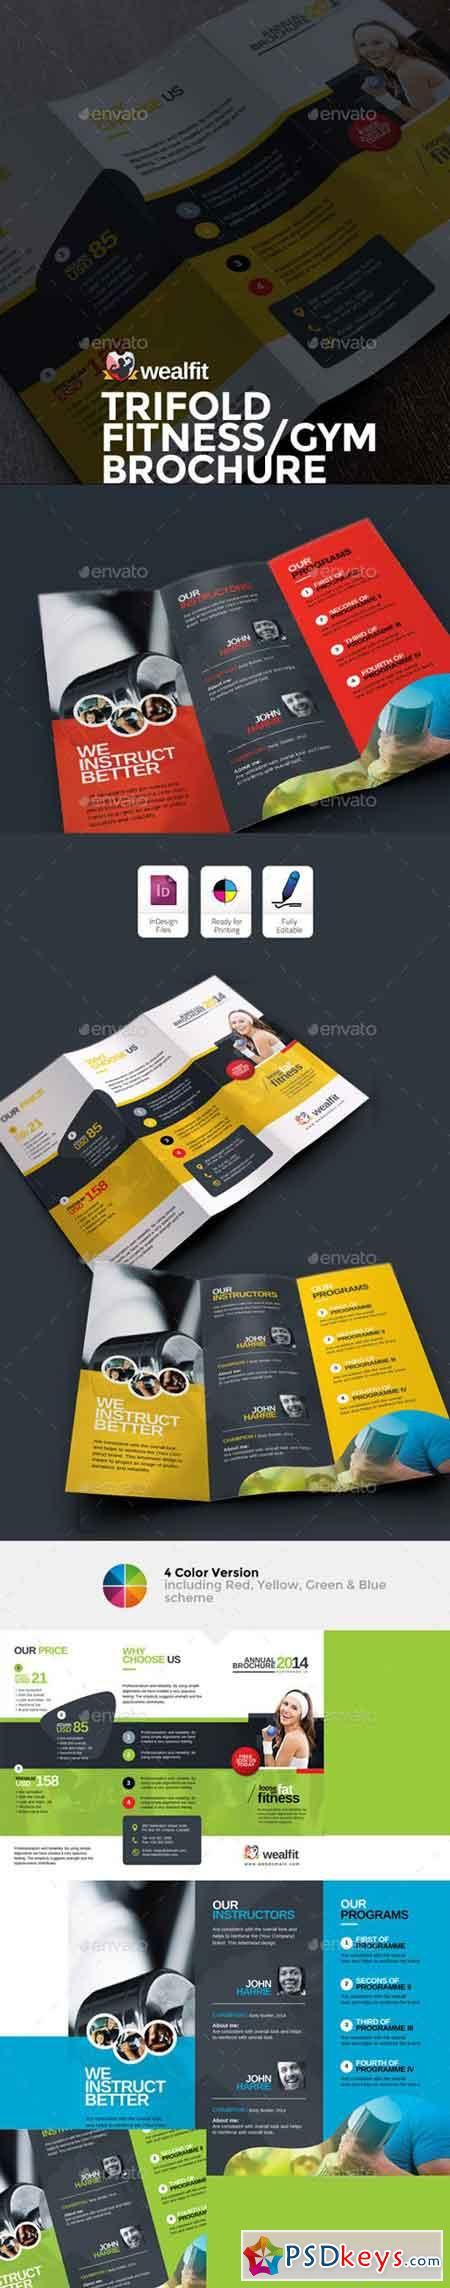 WealFit Fitness - Gym Trifold Brochure 10092601